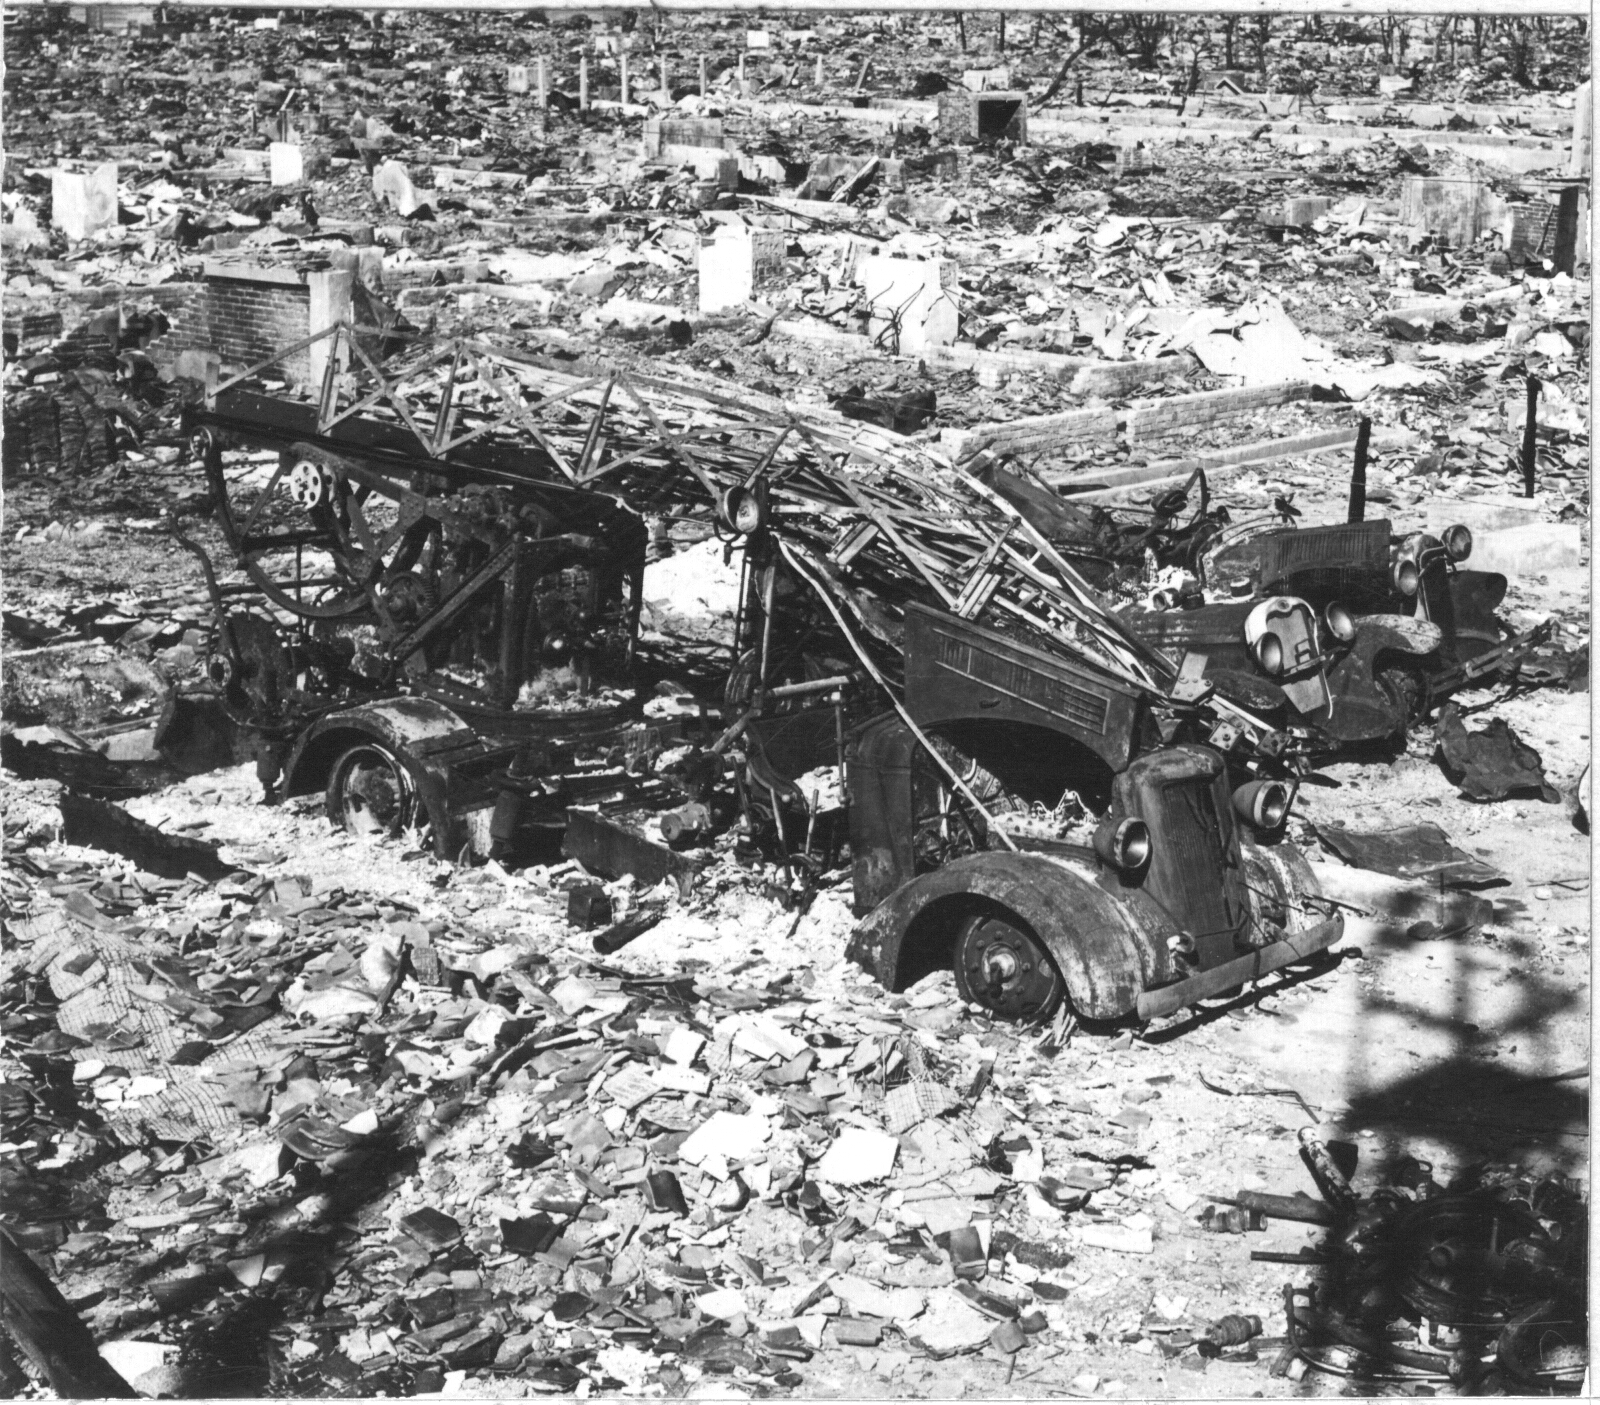 Photograph of Hiroshima after the atomic bomb. A burned out fire engine is surrounded by rubble.